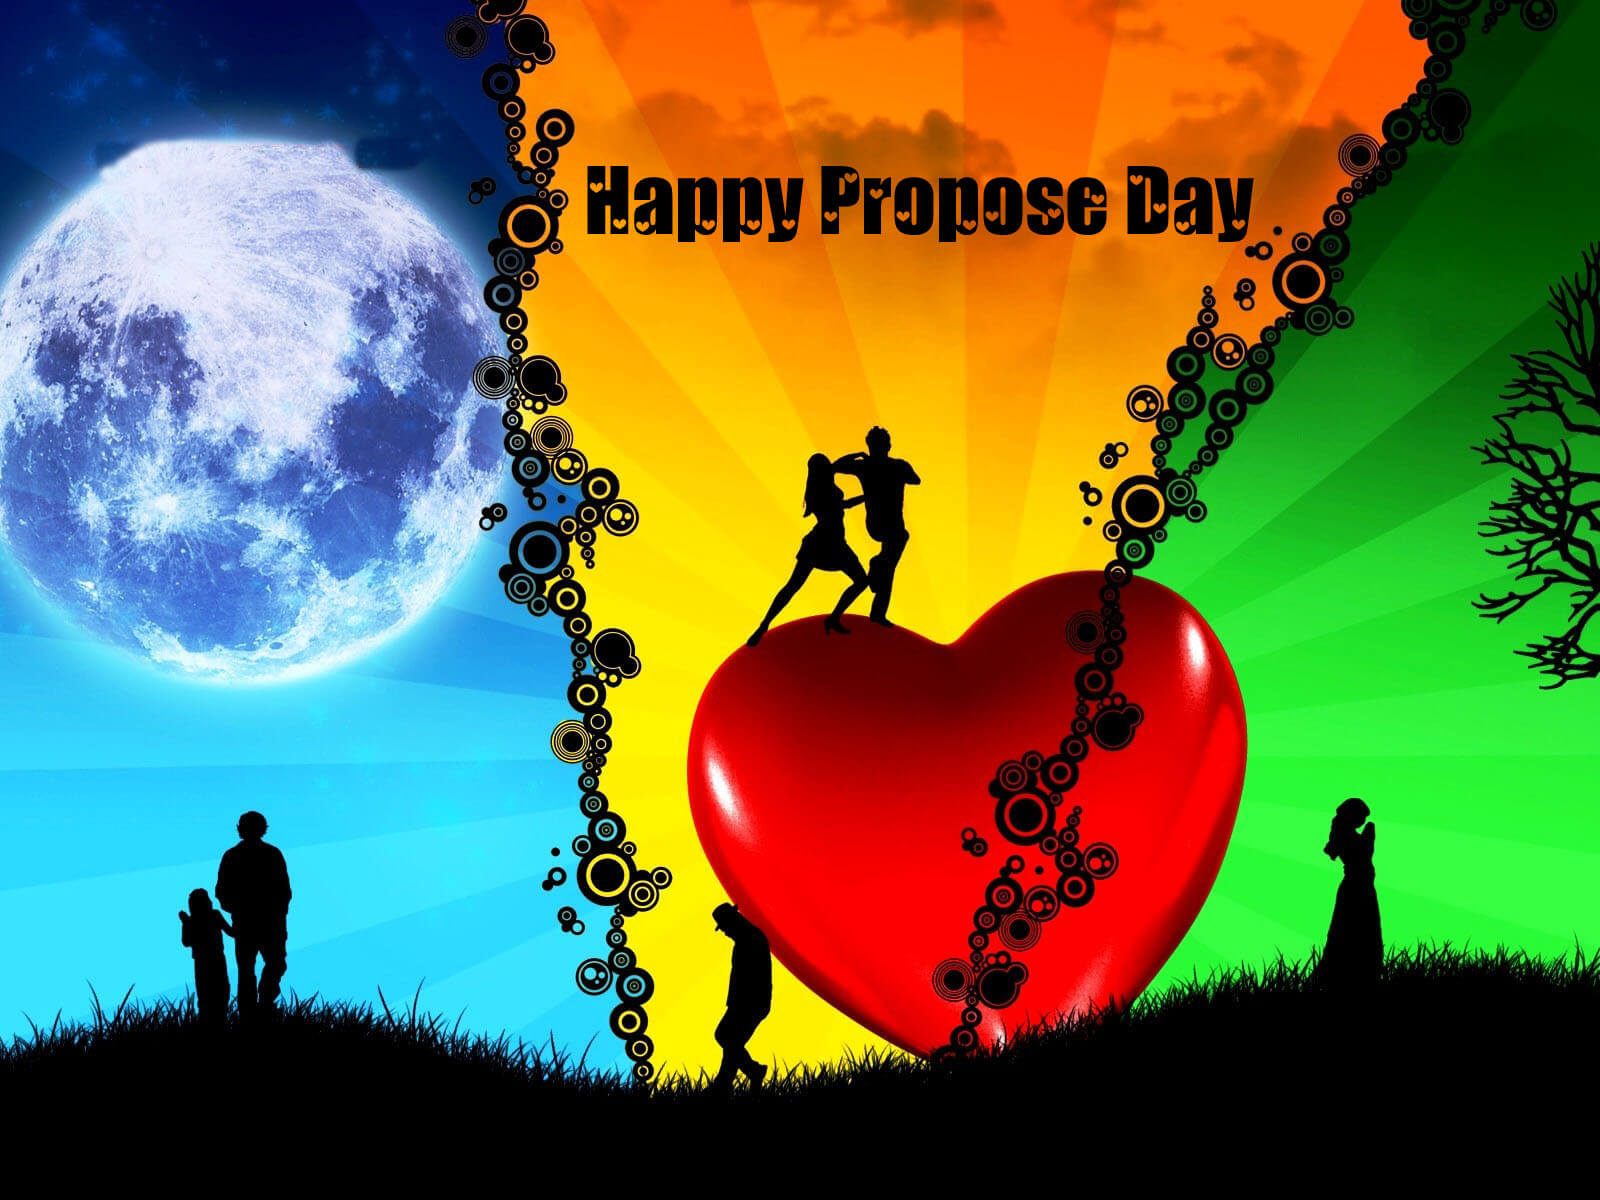 happy propose day couples february 8th desktop background hd wallpaper